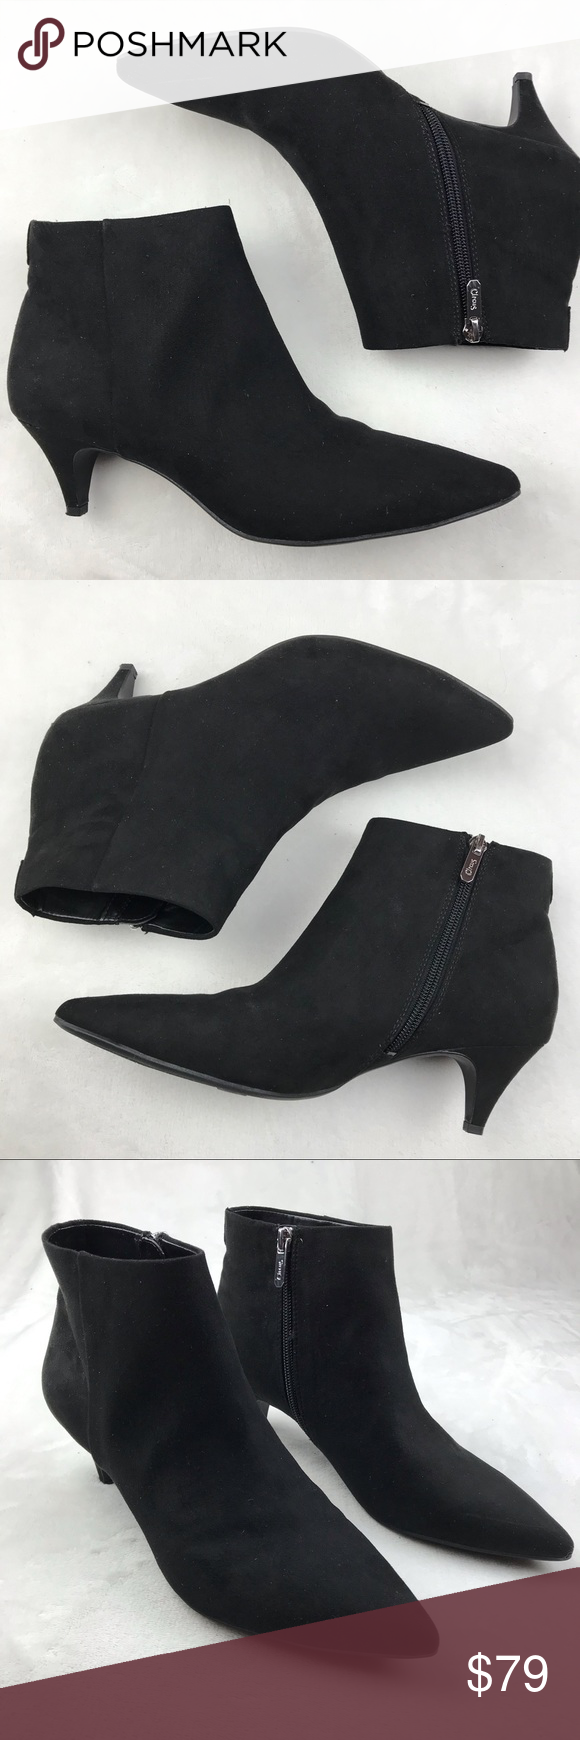 9484d860bd Sam Edelman Circus Booties The low-profile kitten heel make these Kirby  Booties super